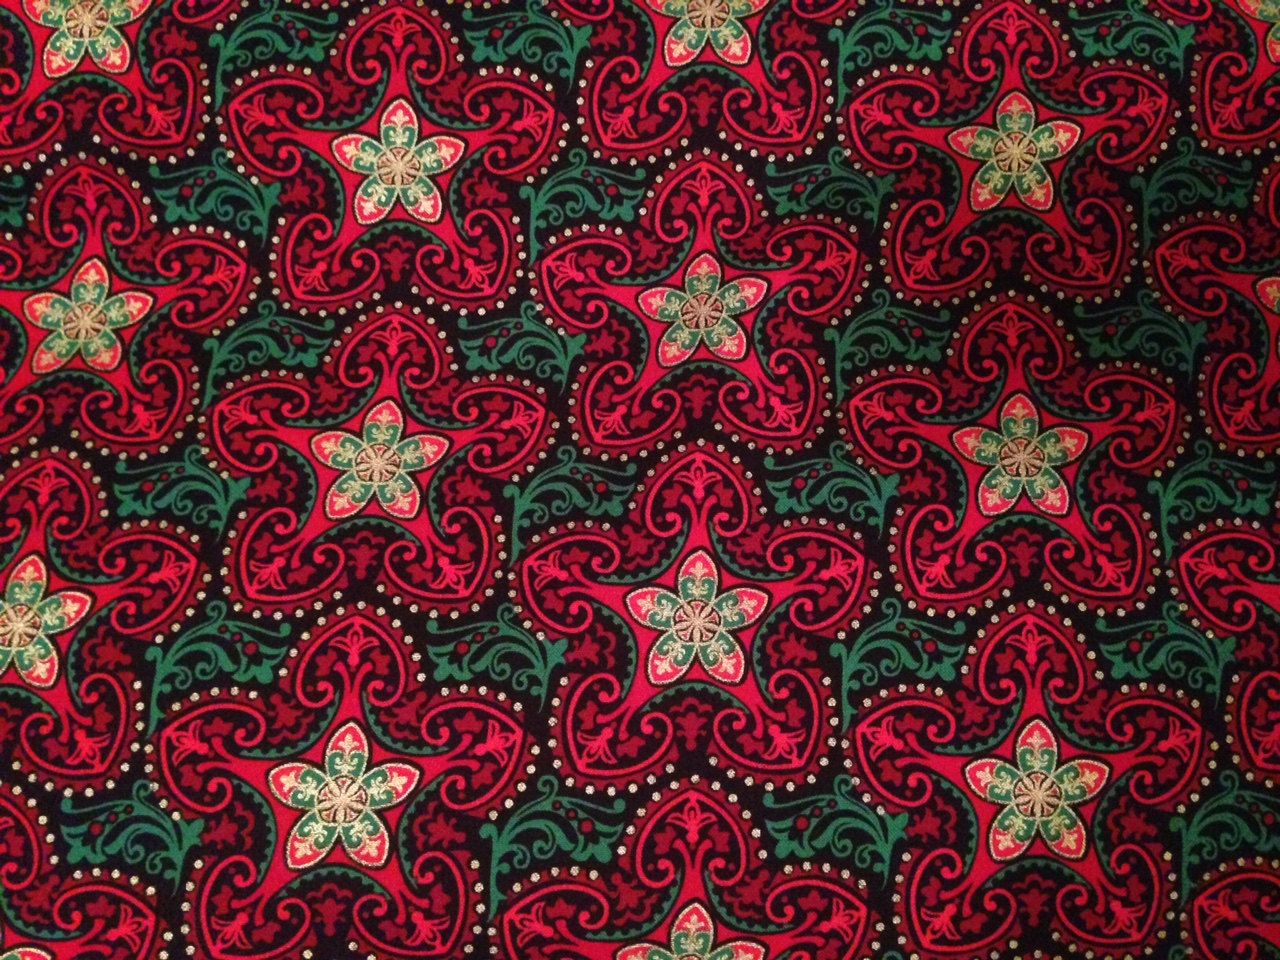 Christmas Fabric By The Yard Christmas Star Fabric By The Yard